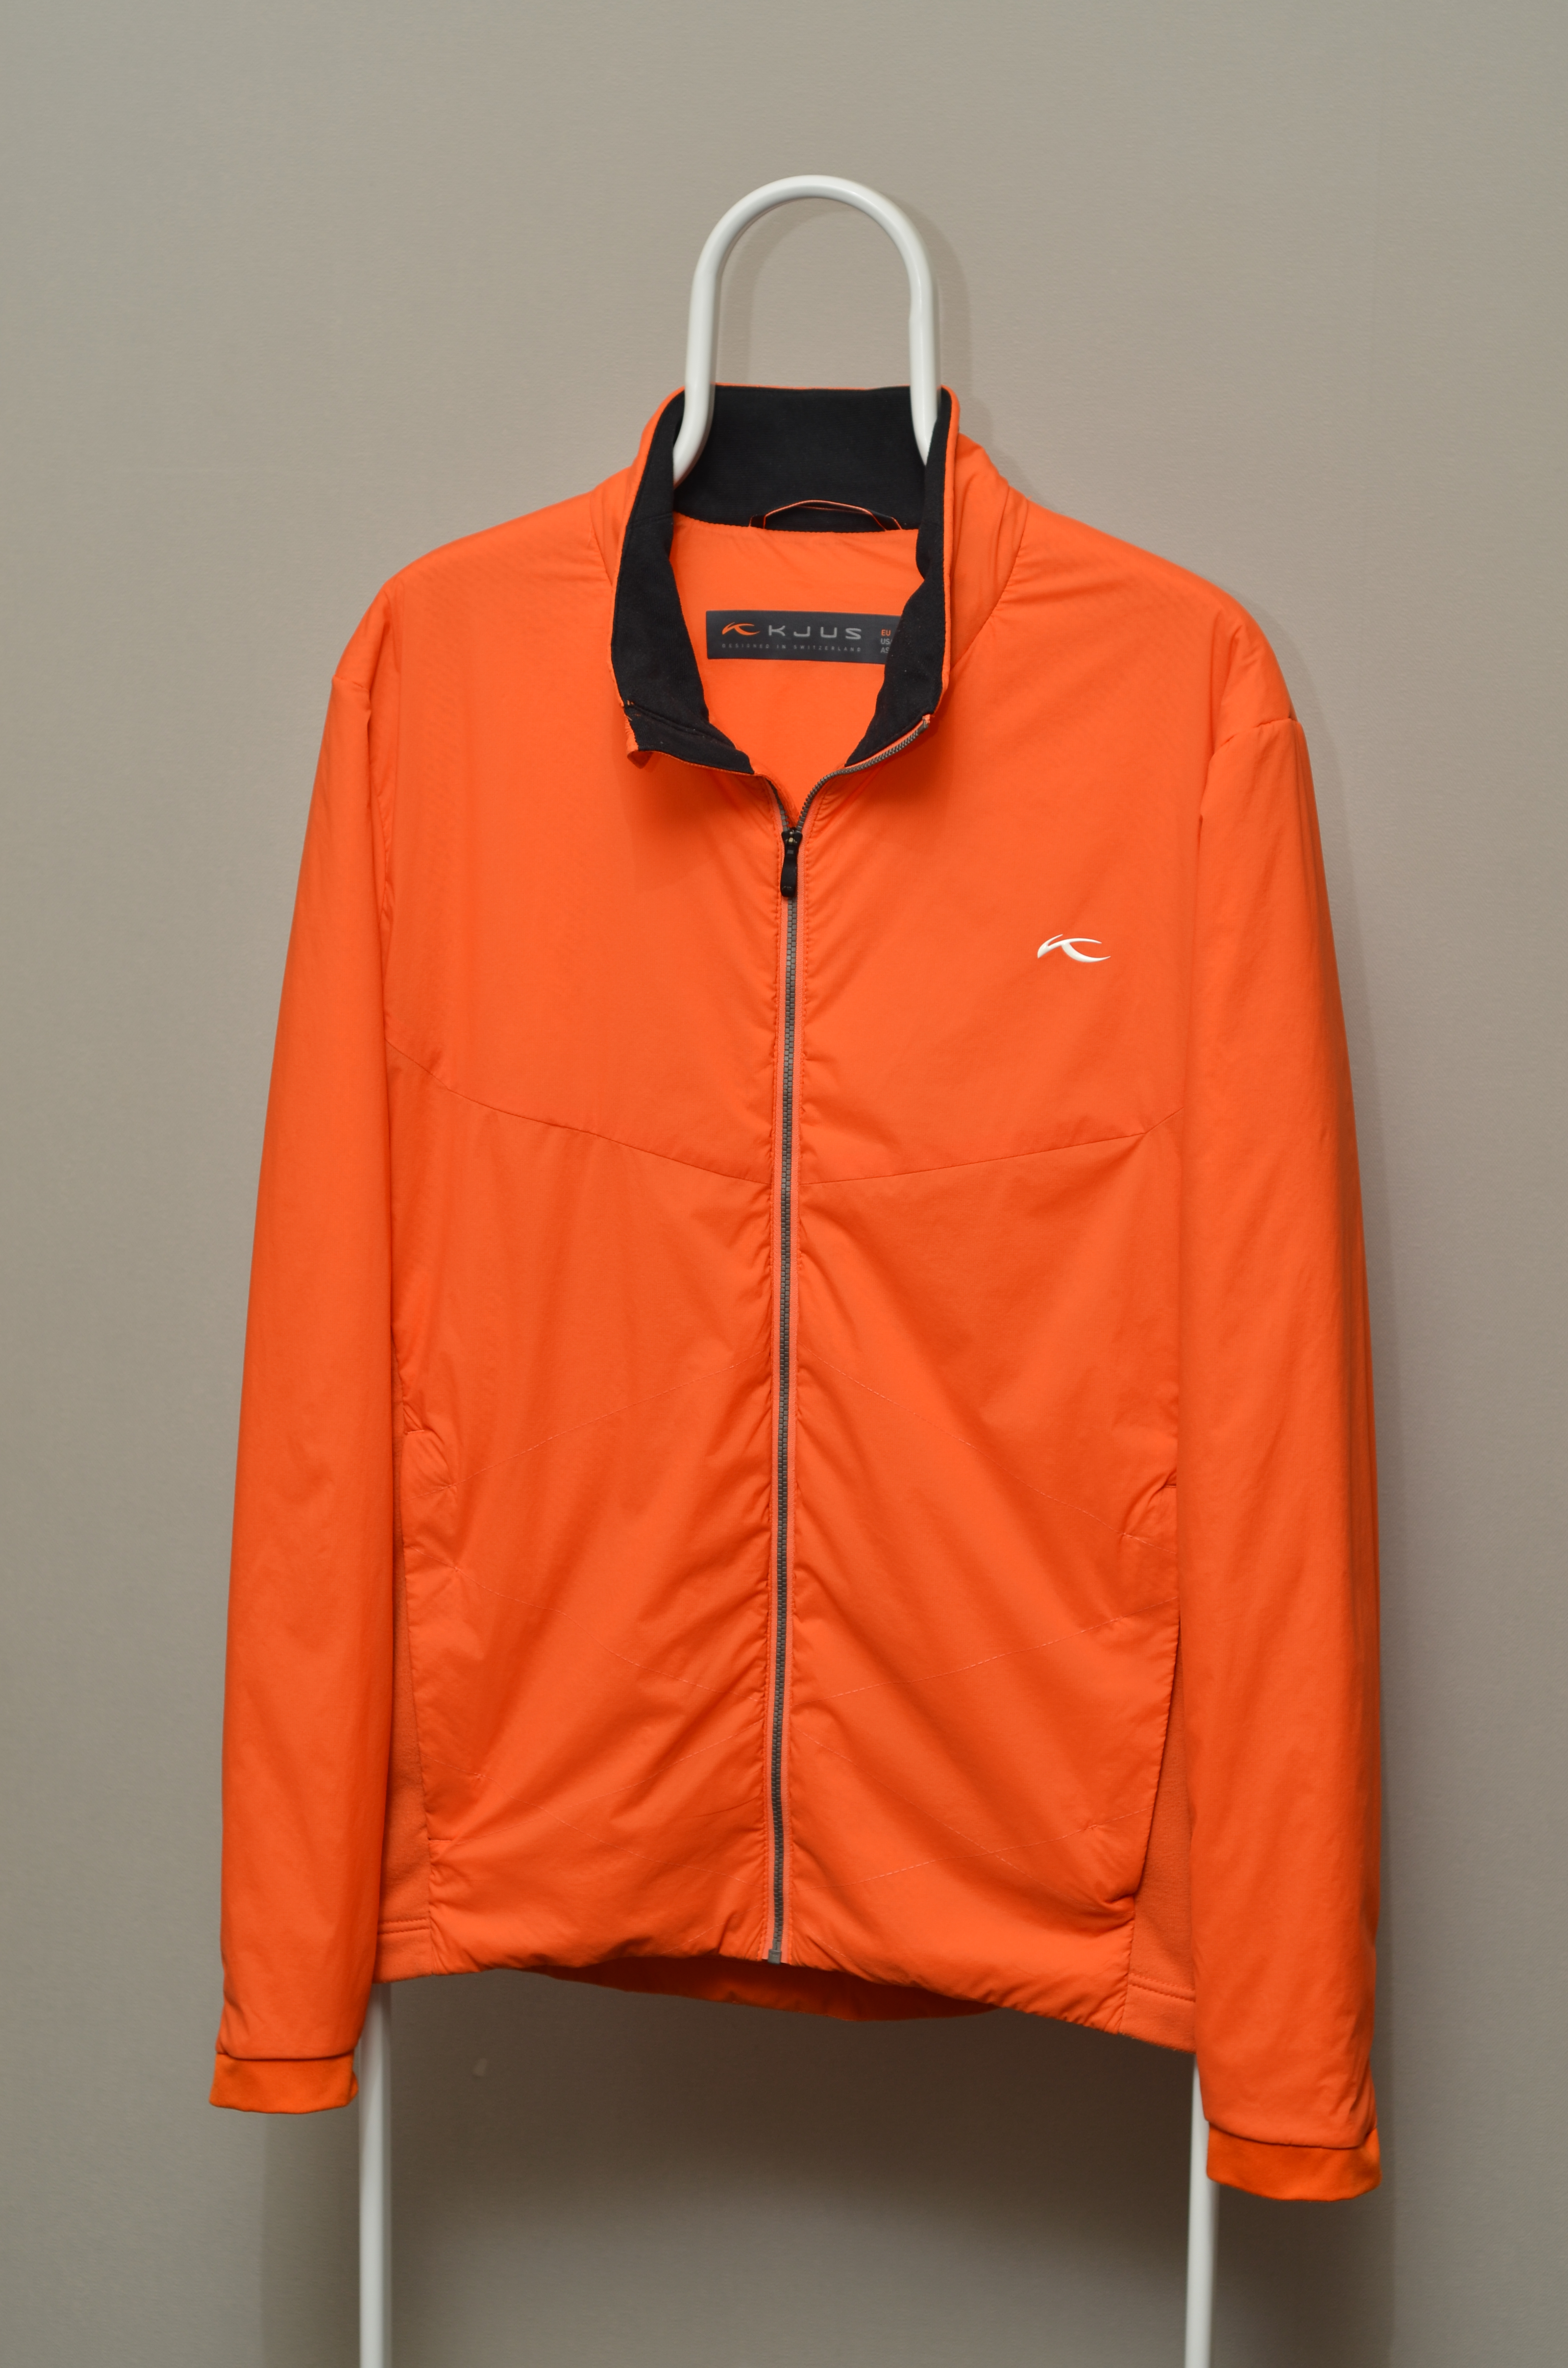 New with Tags Mens KJUS FRX 3D Map Polartec Jacket Waterproof MSRP $ 399